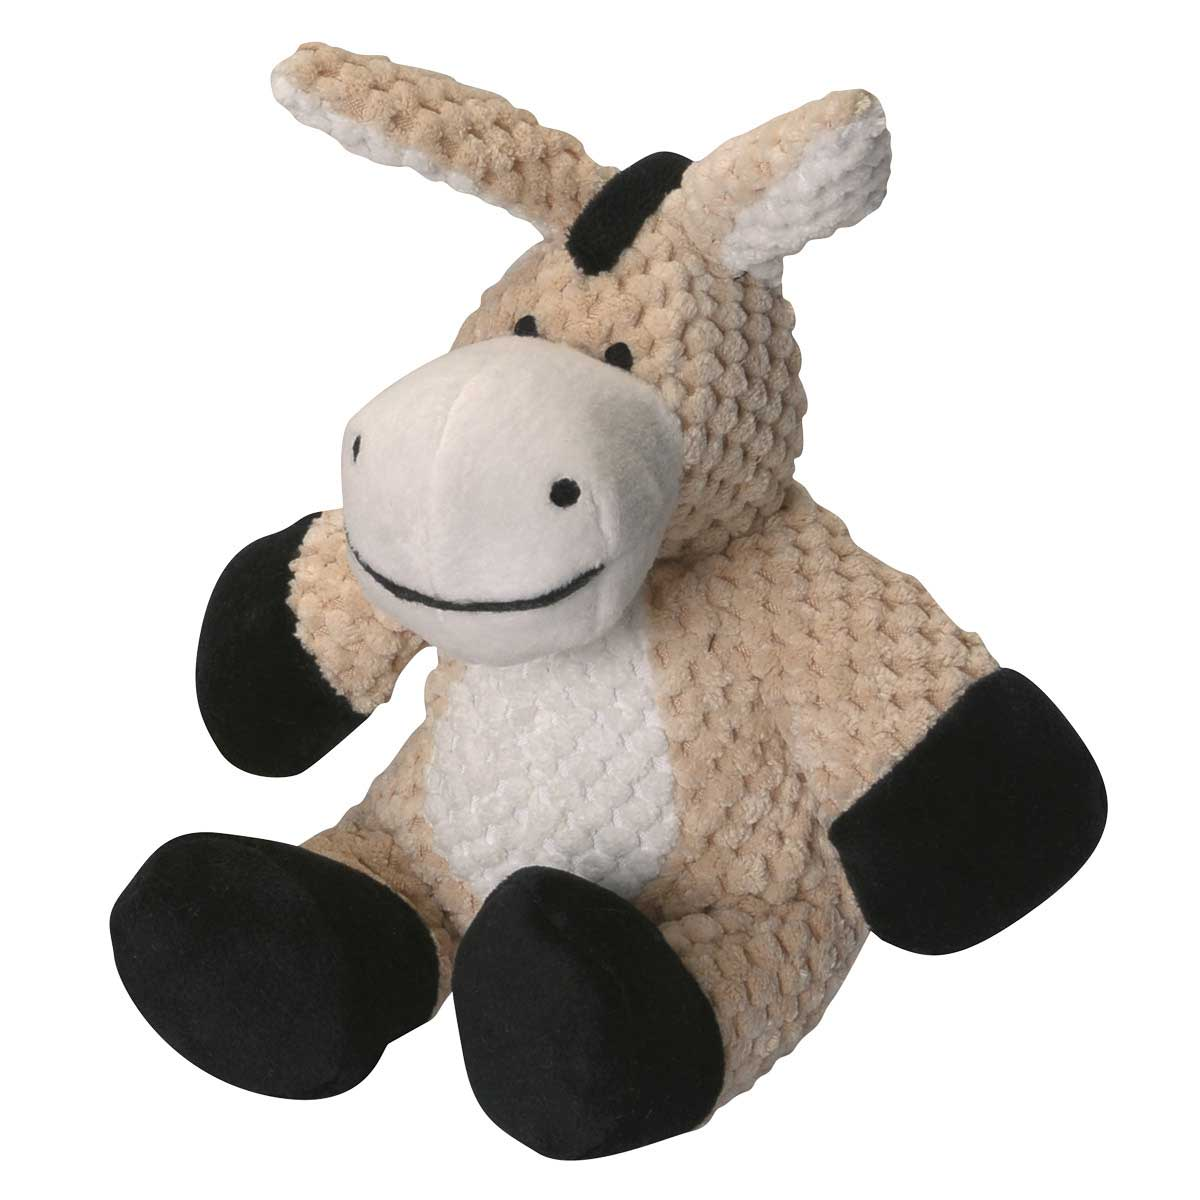 goDog Checkers Small Stuffed Donkey Toy for Dogs 6.5 inch